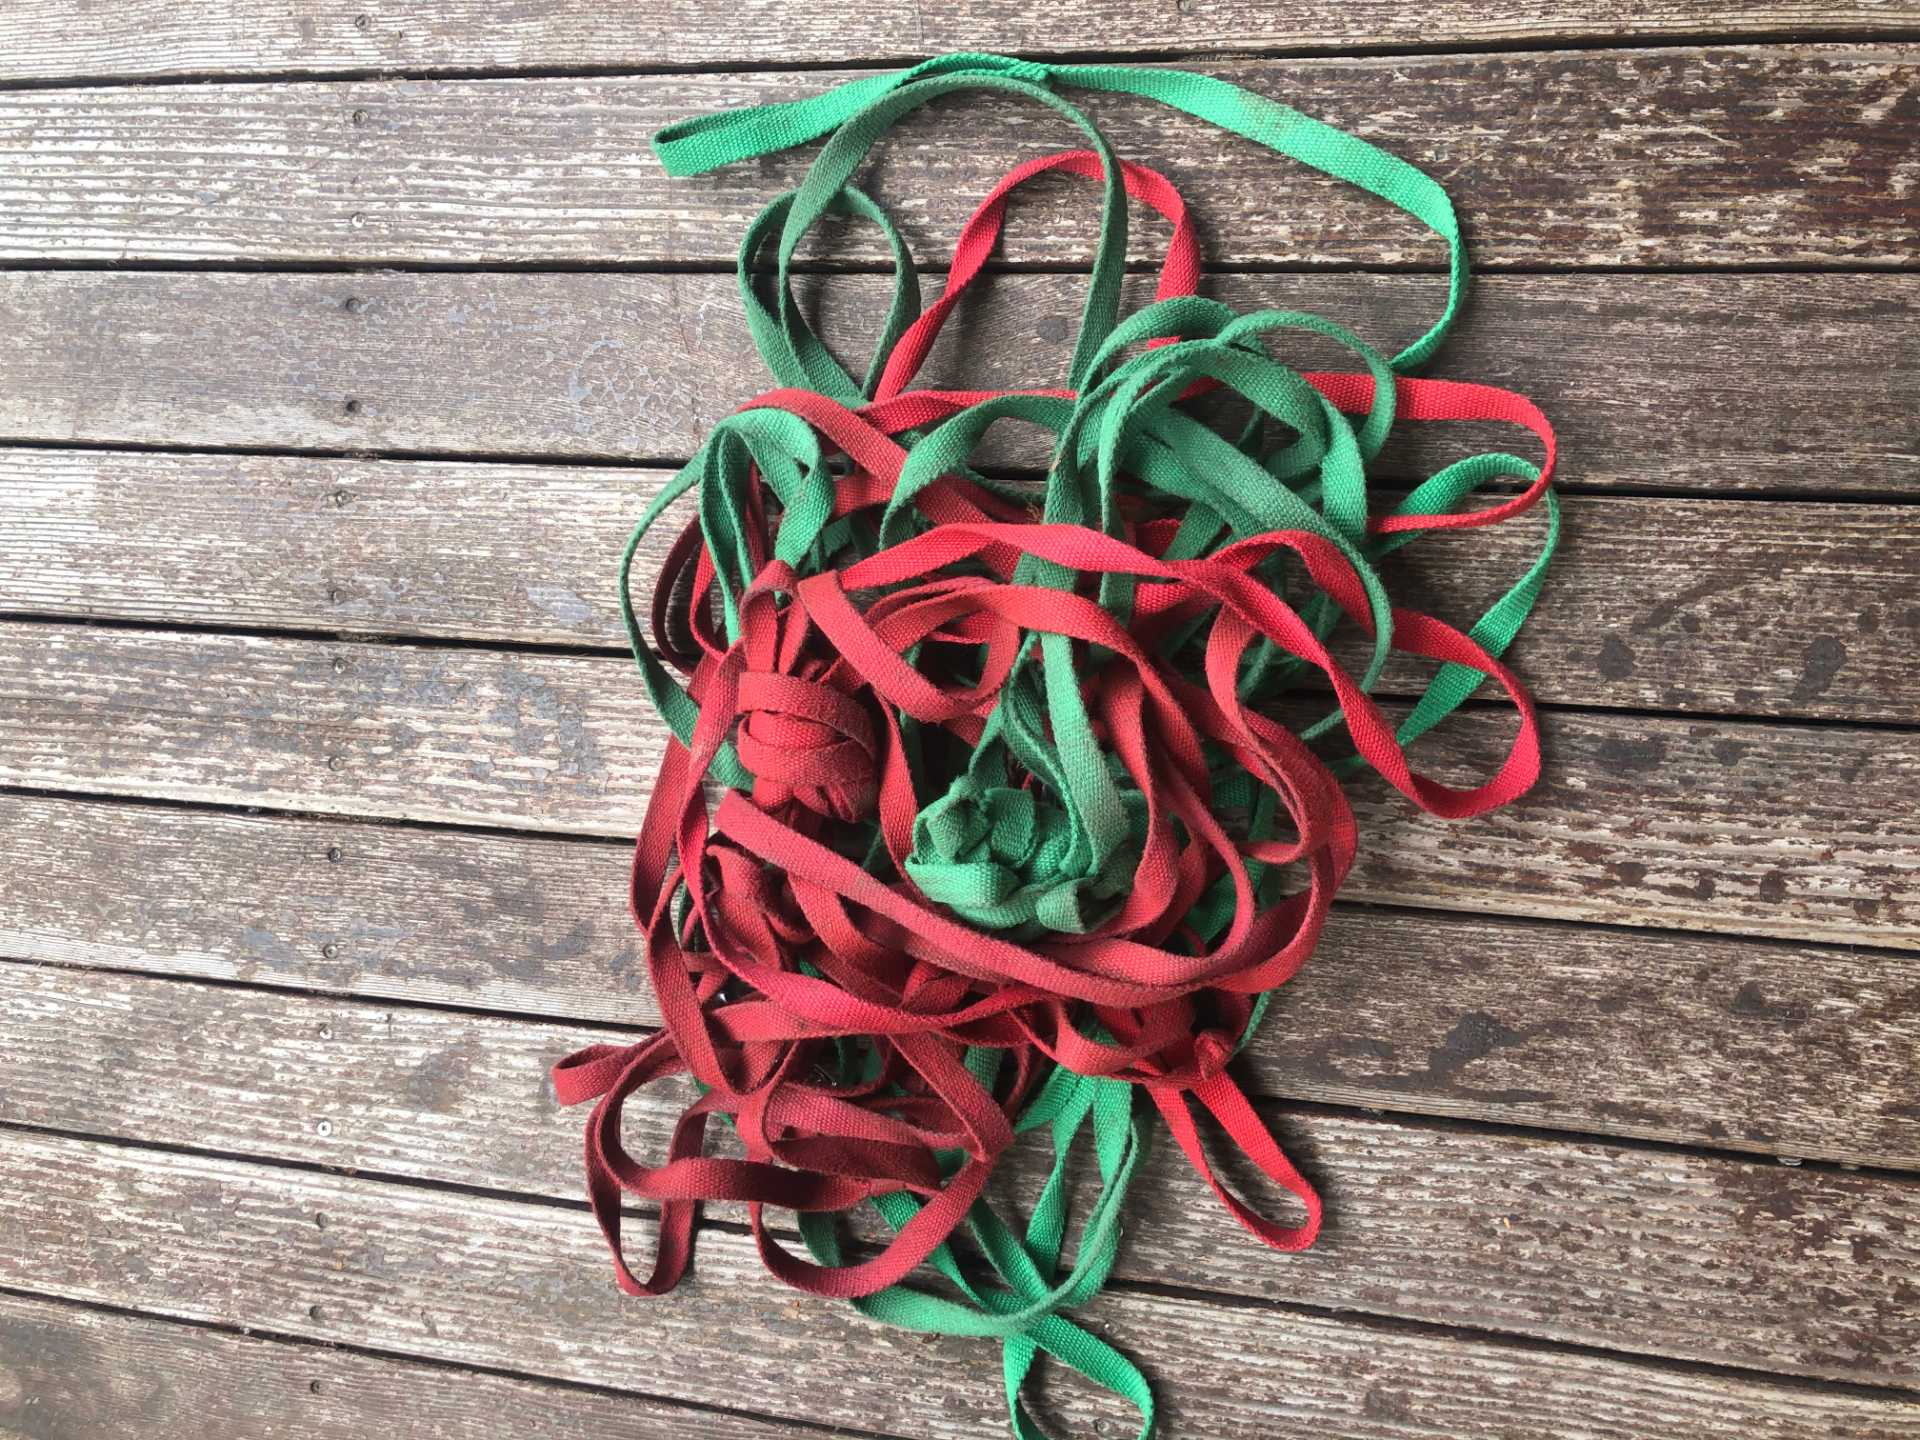 Green and red rope on wood. Photo courtesy of Lauren Johnson.